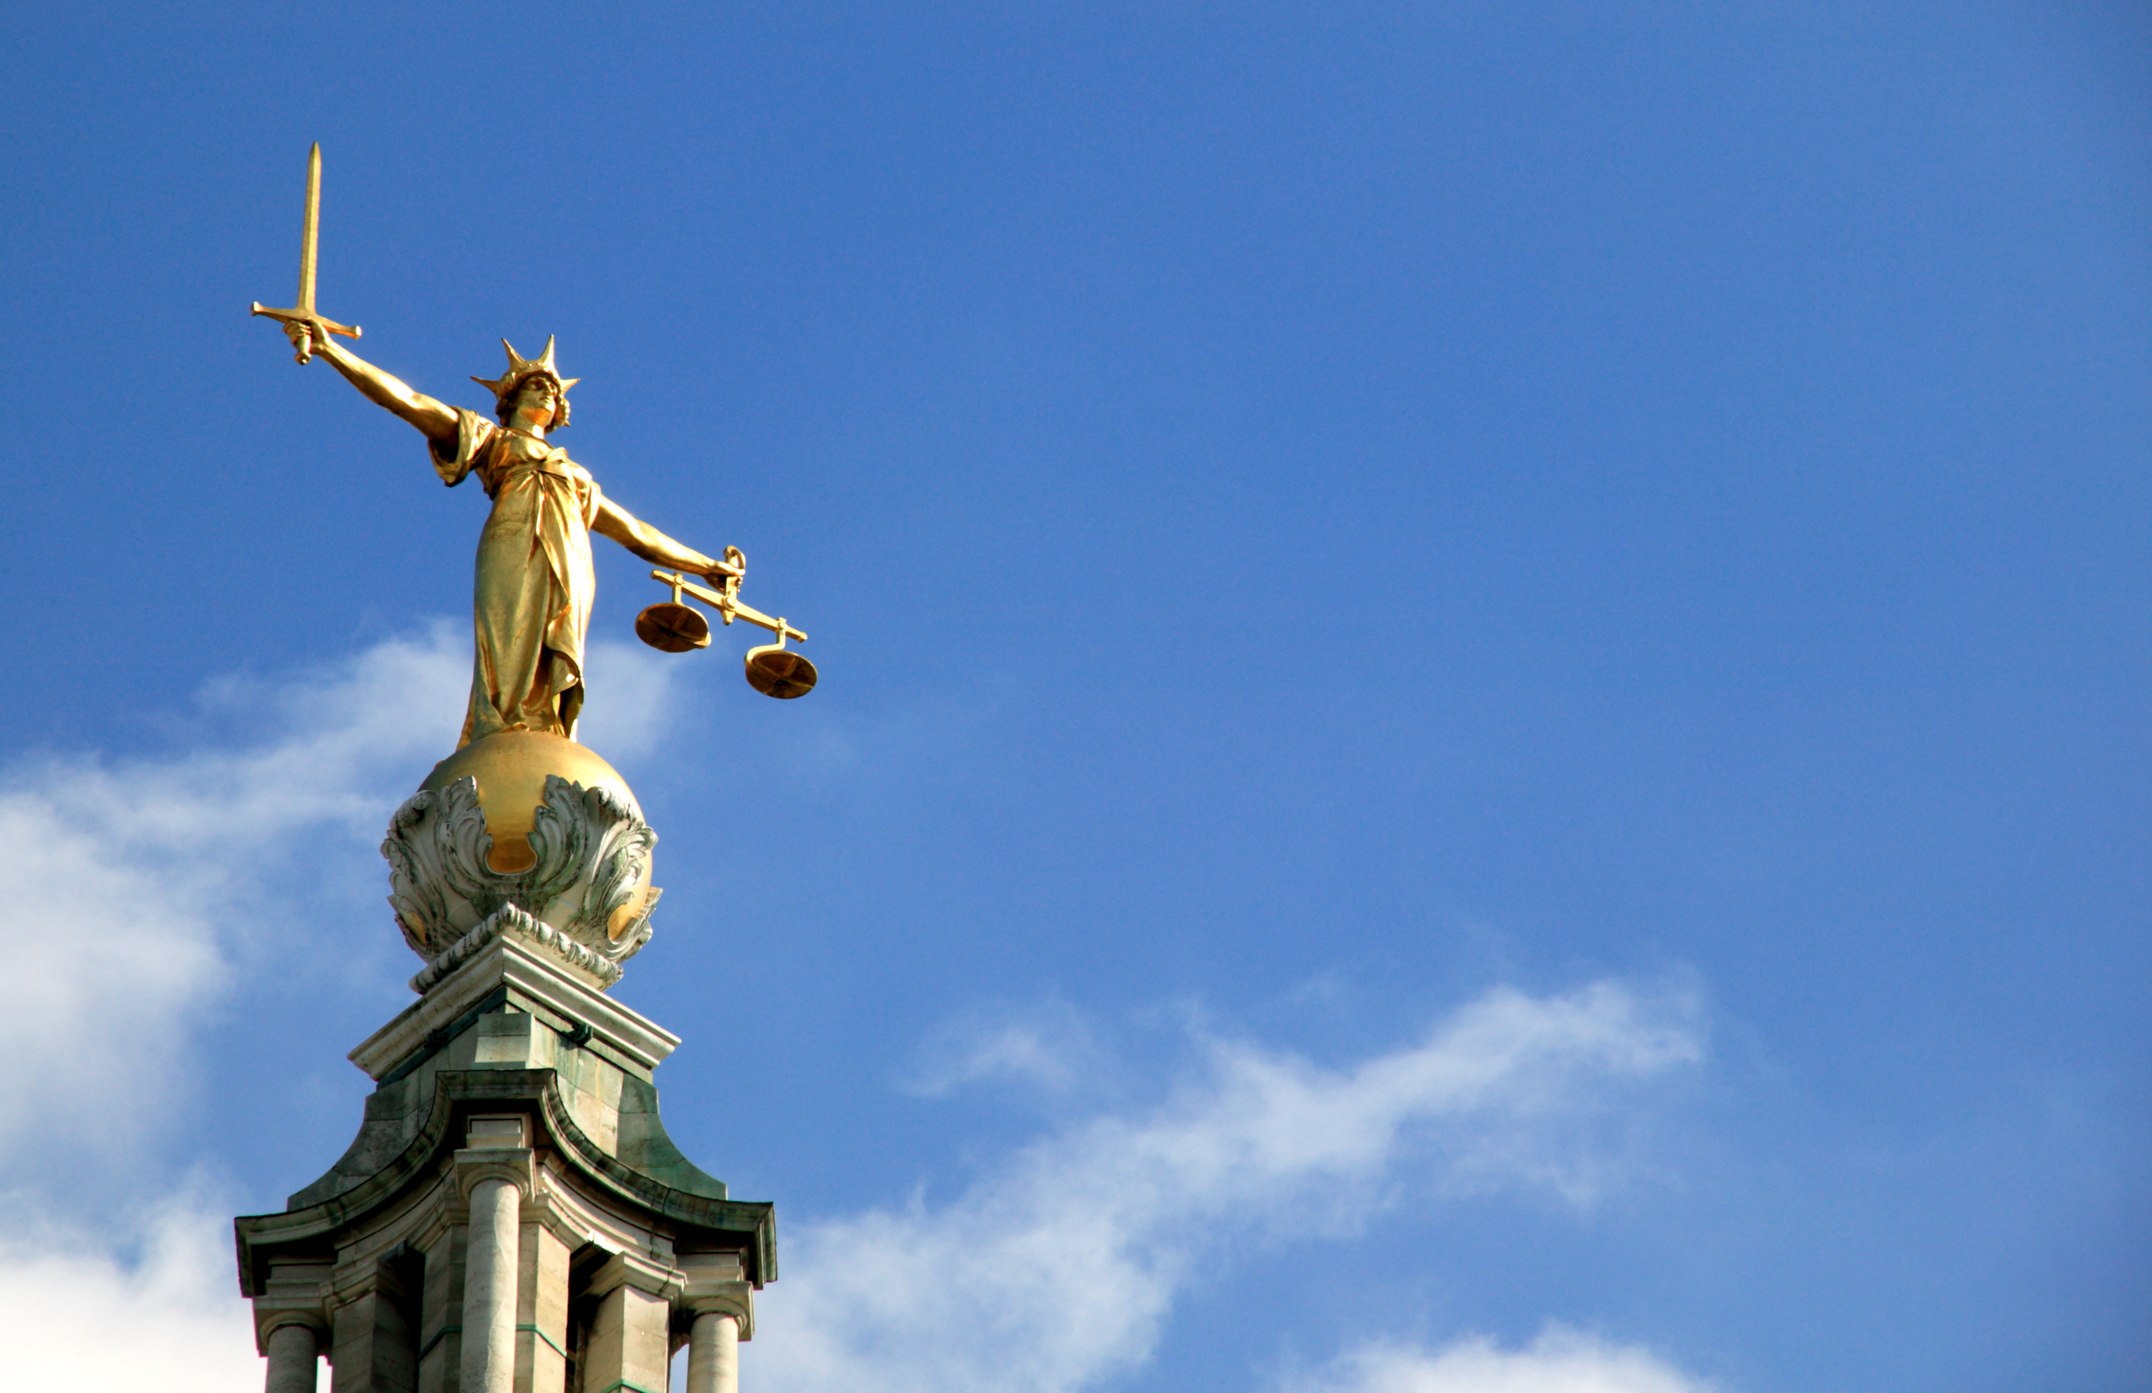 http://www.dreamstime.com/royalty-free-stock-images-scales-justice-lady-justice-old-bailey-image10362939